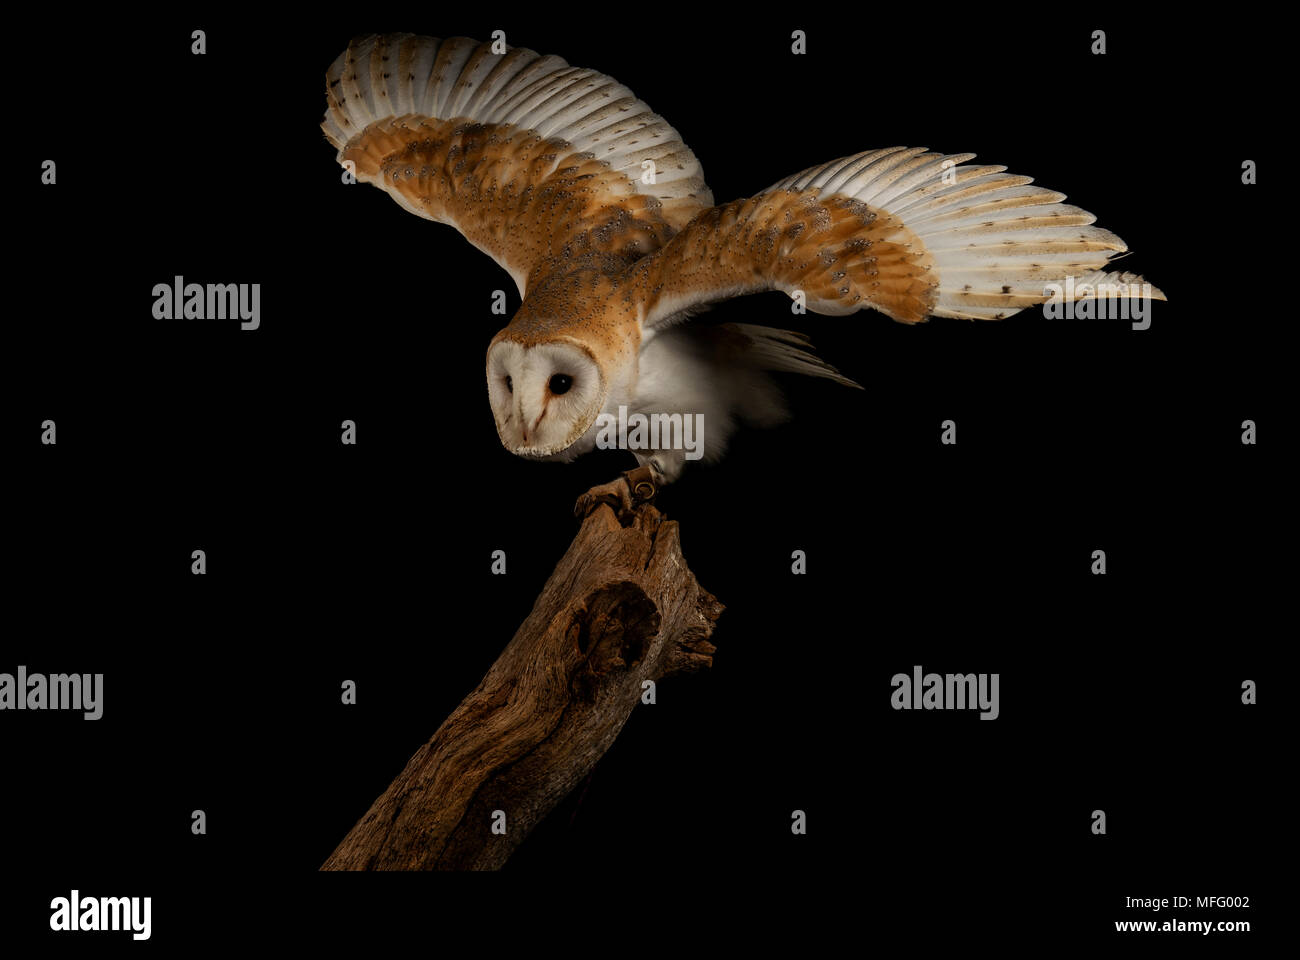 Barn owl with is wings raised for flight - Stock Image